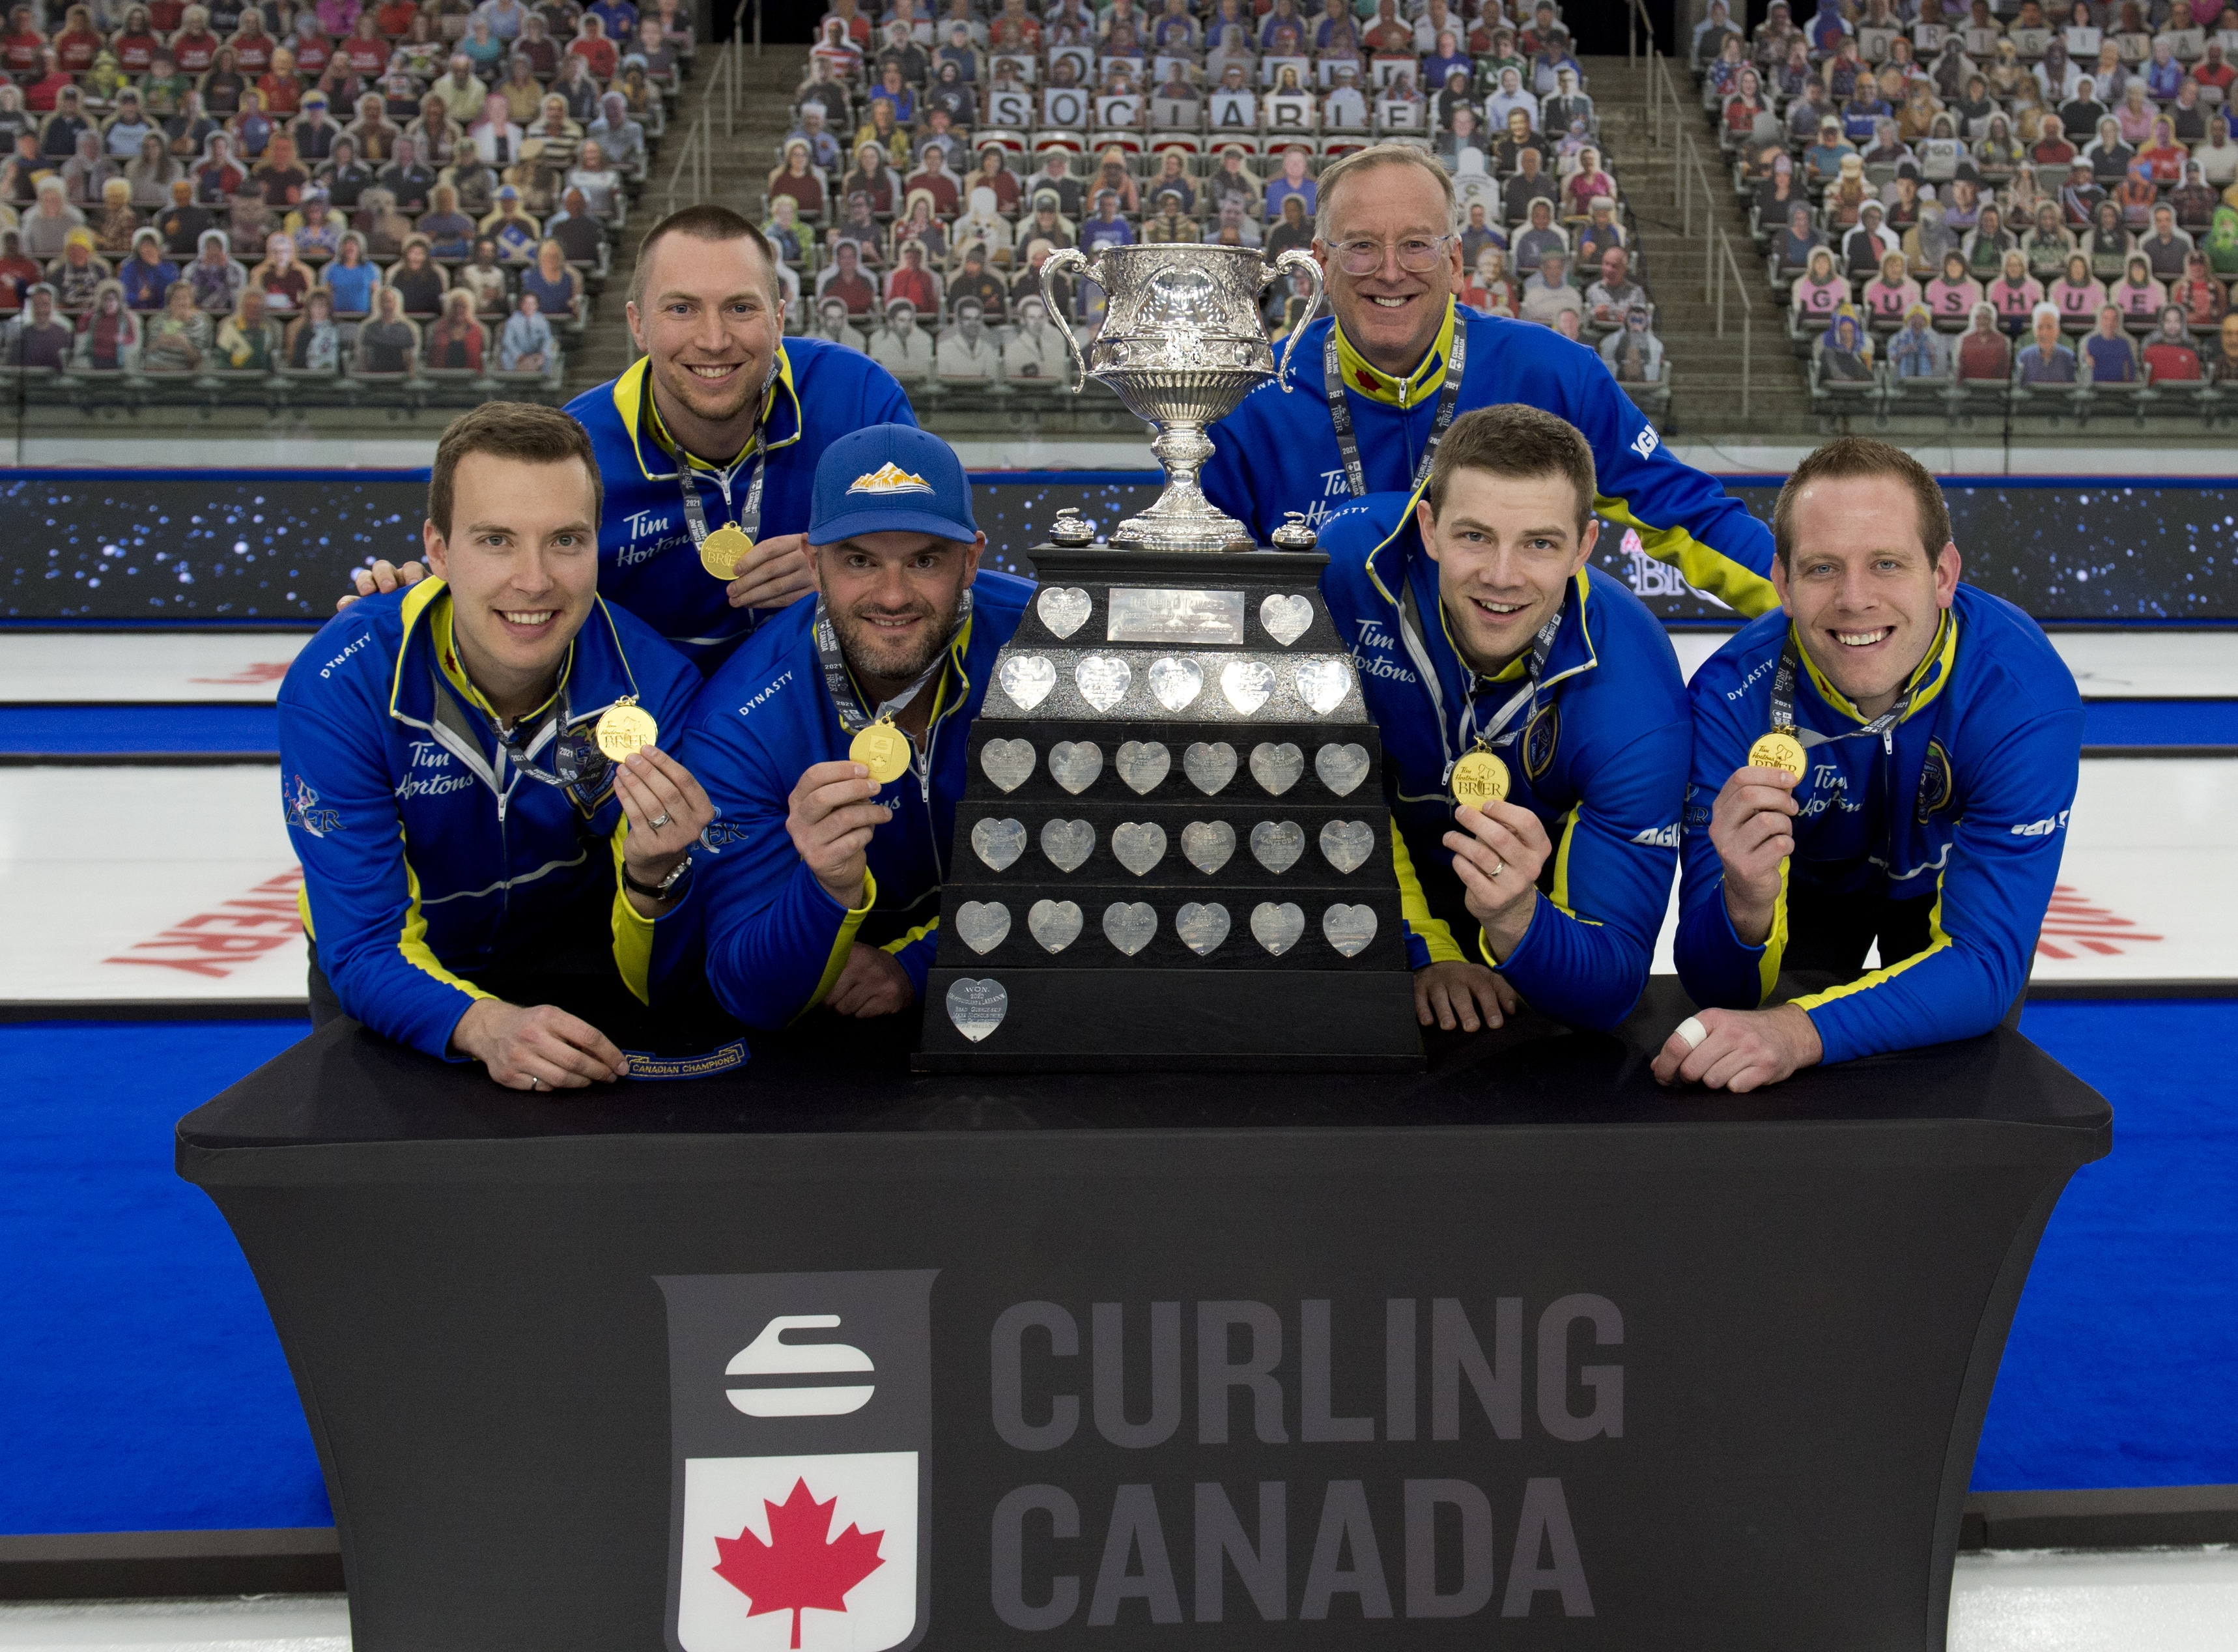 Photo of the 2020-21 Canadian men's curling team.